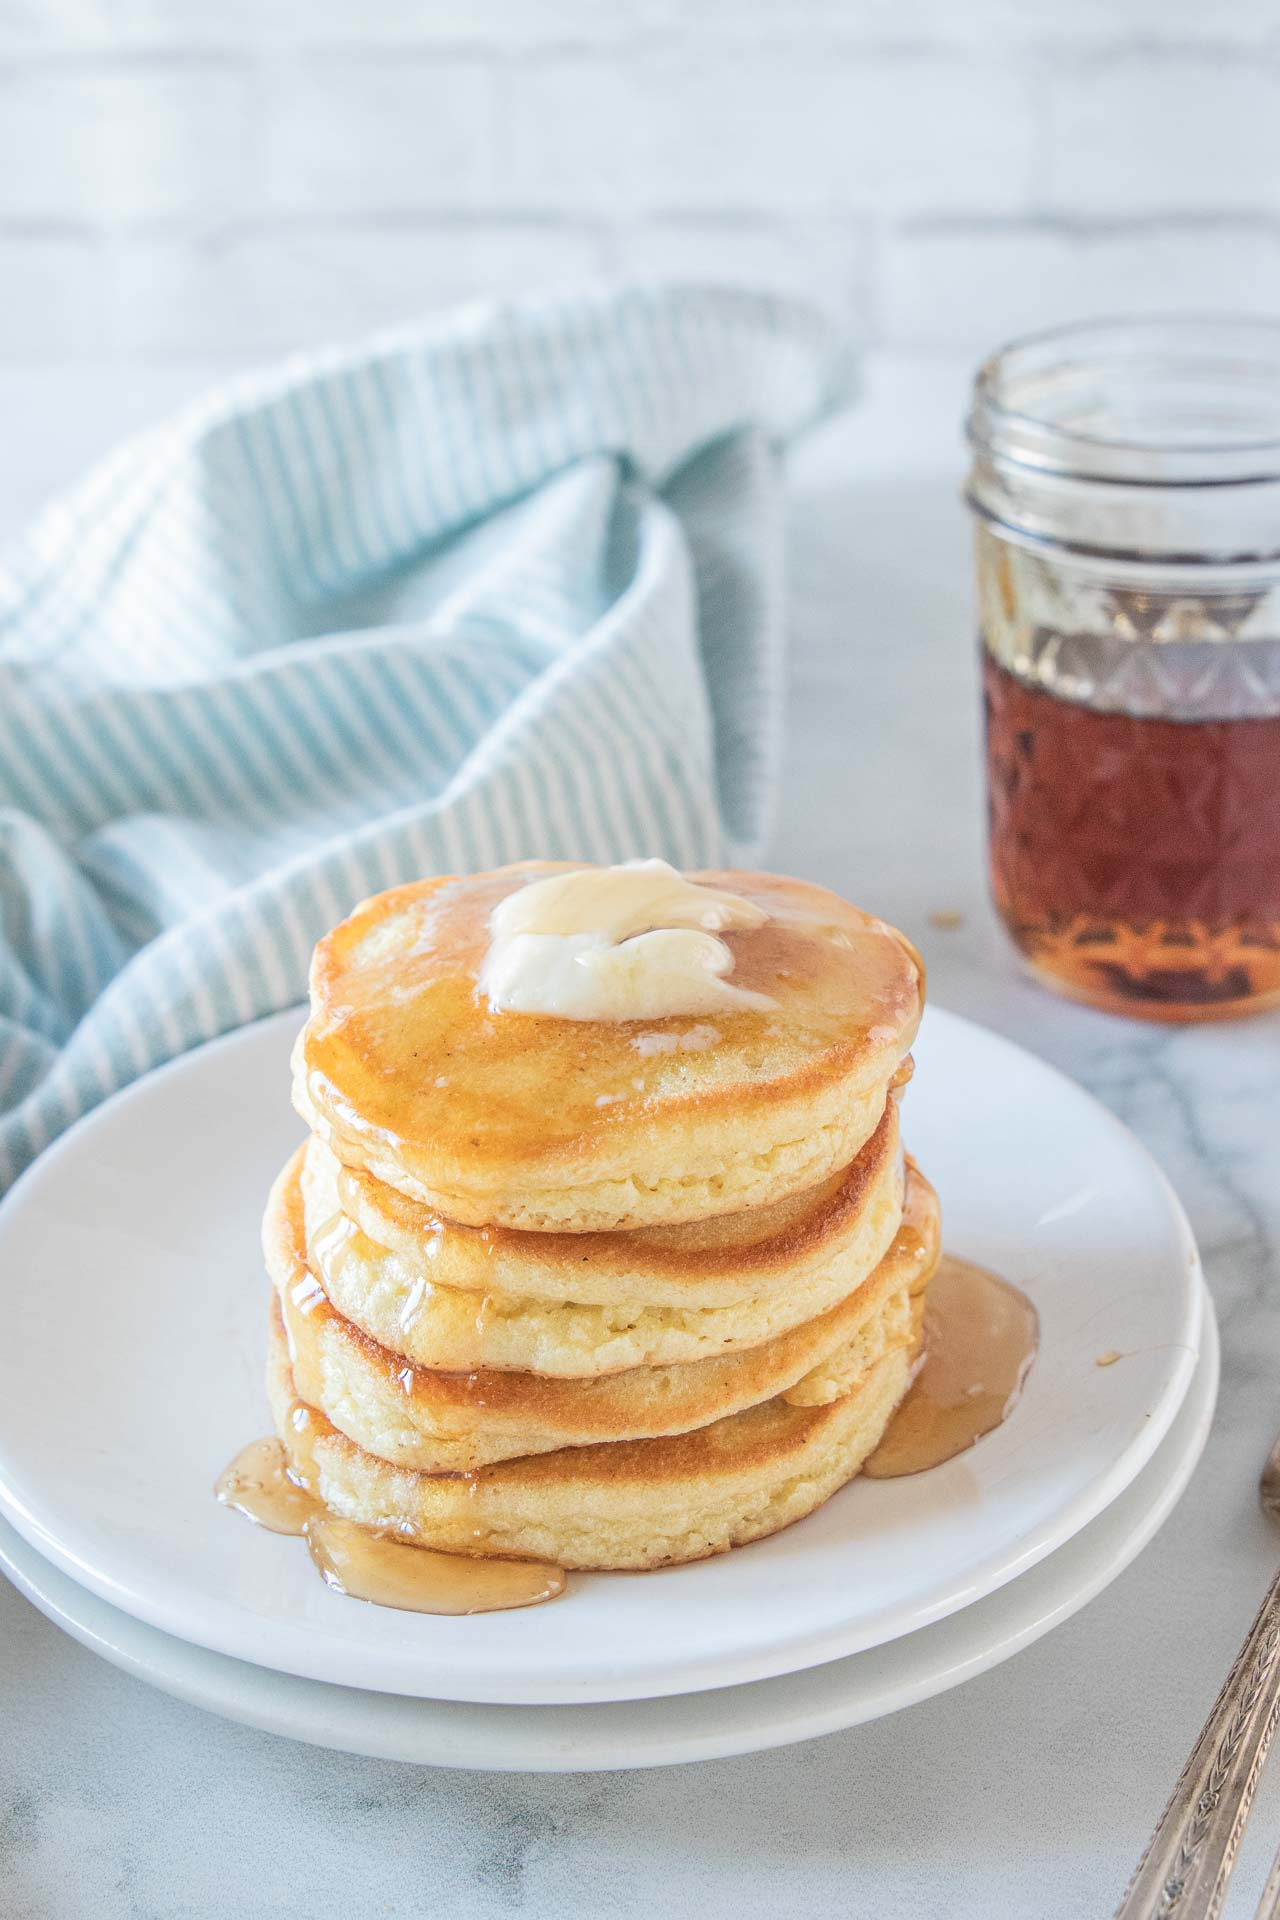 Tall stack of fluffy keto pancakes.